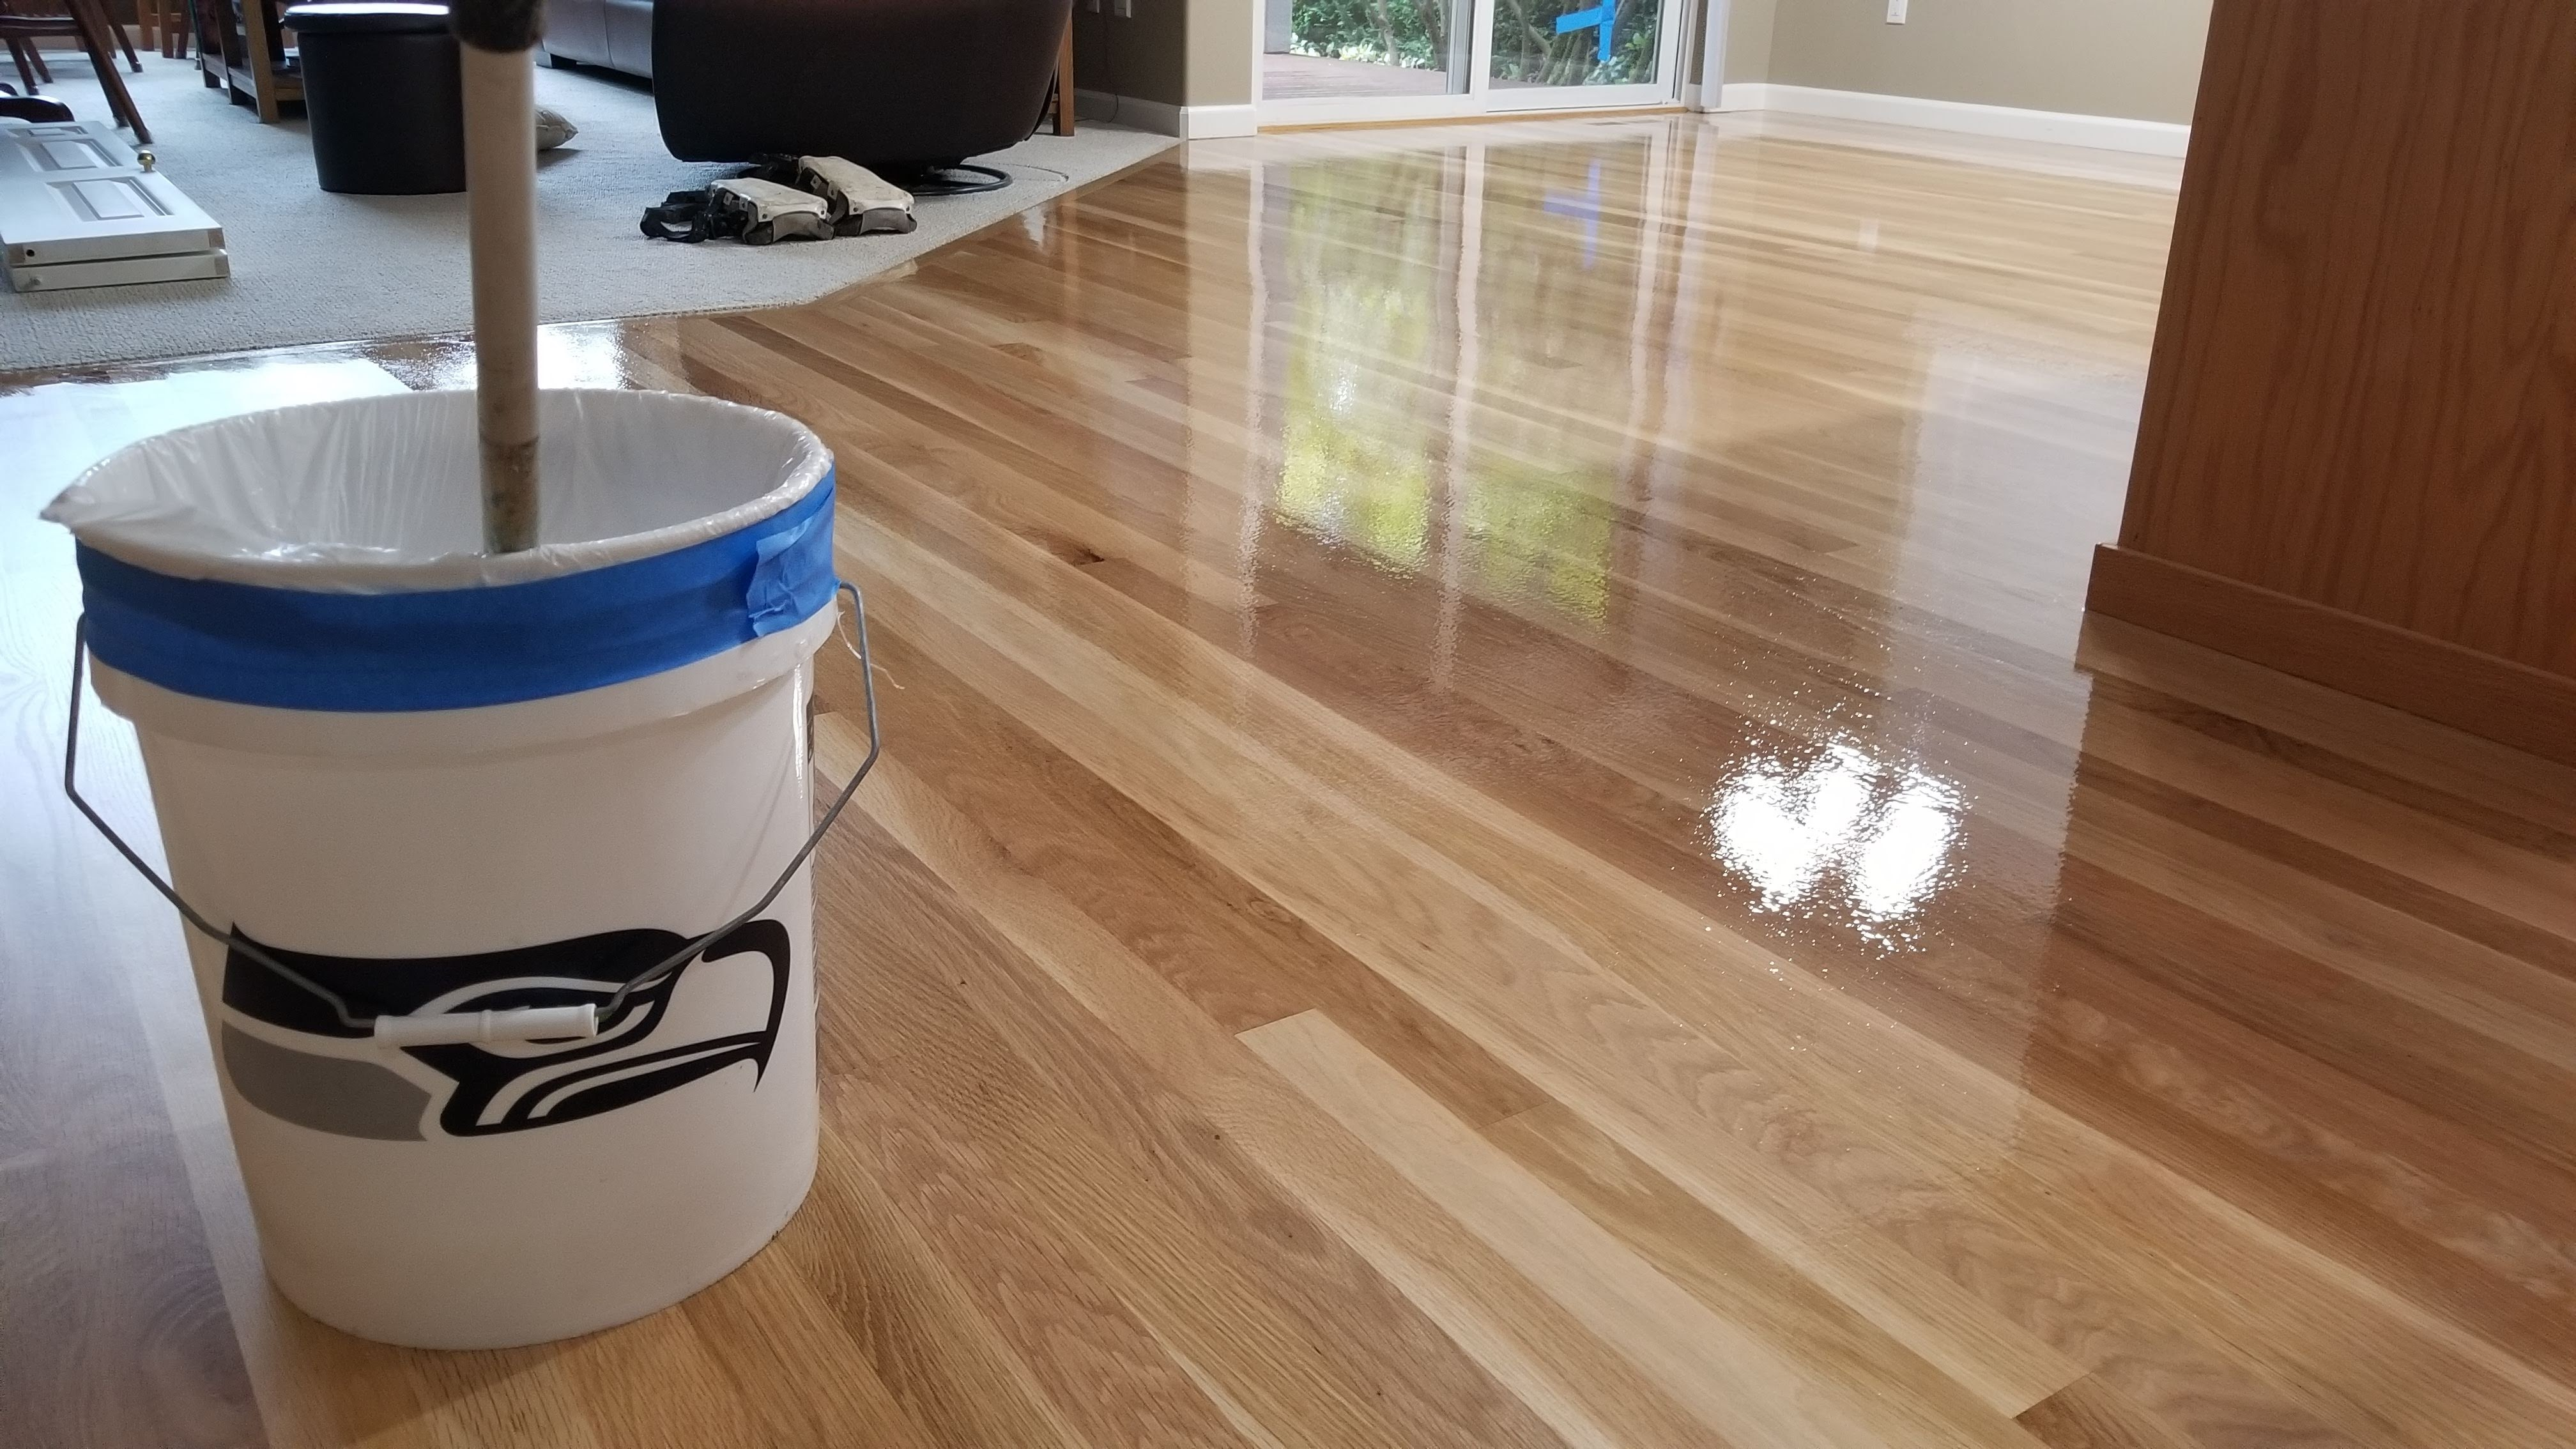 New Wood Floor Shine